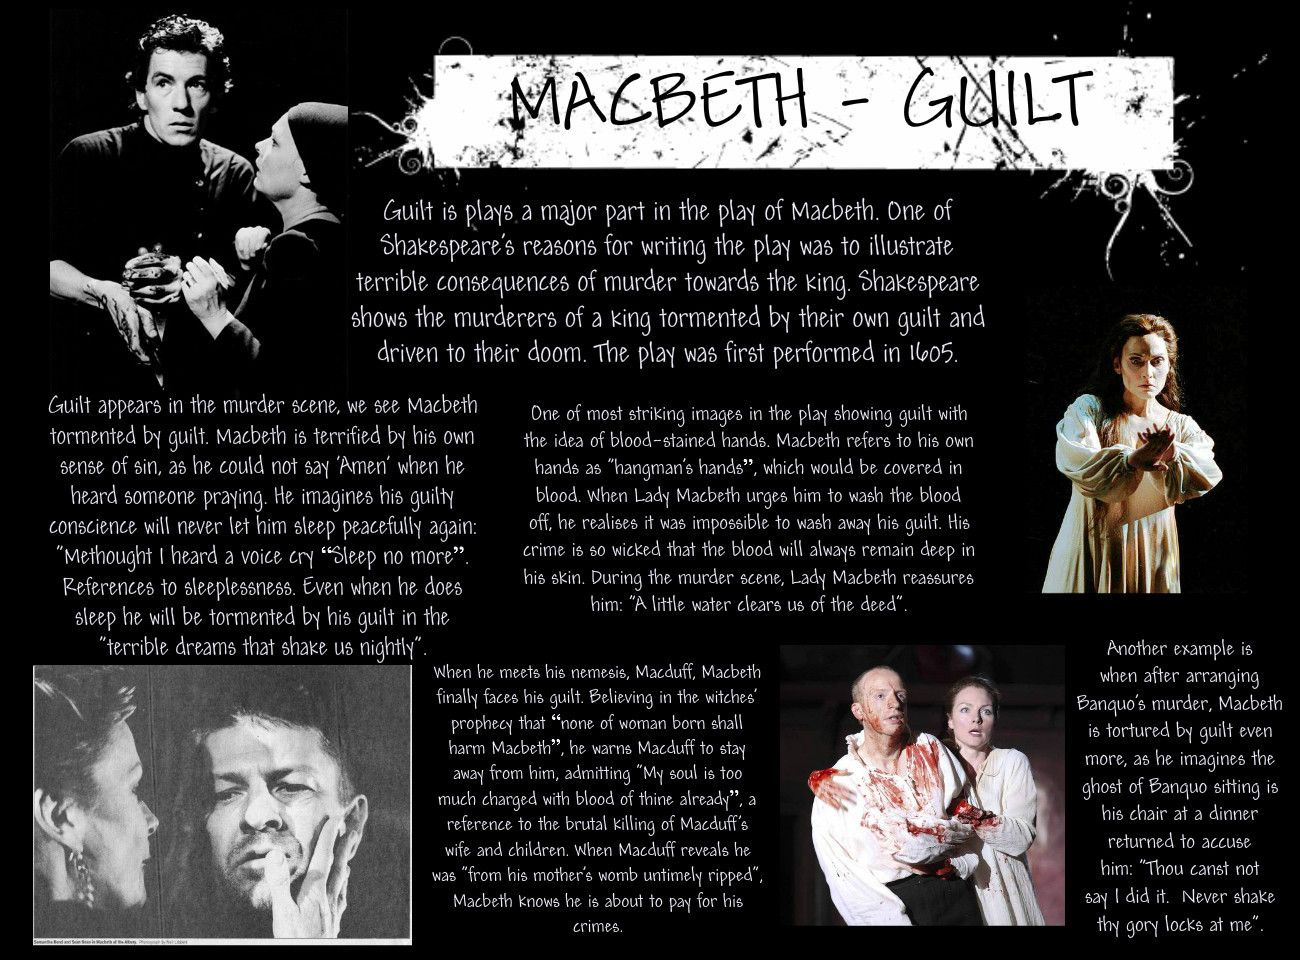 How did Macbeth feel about killing Banquo and Macduff's family?